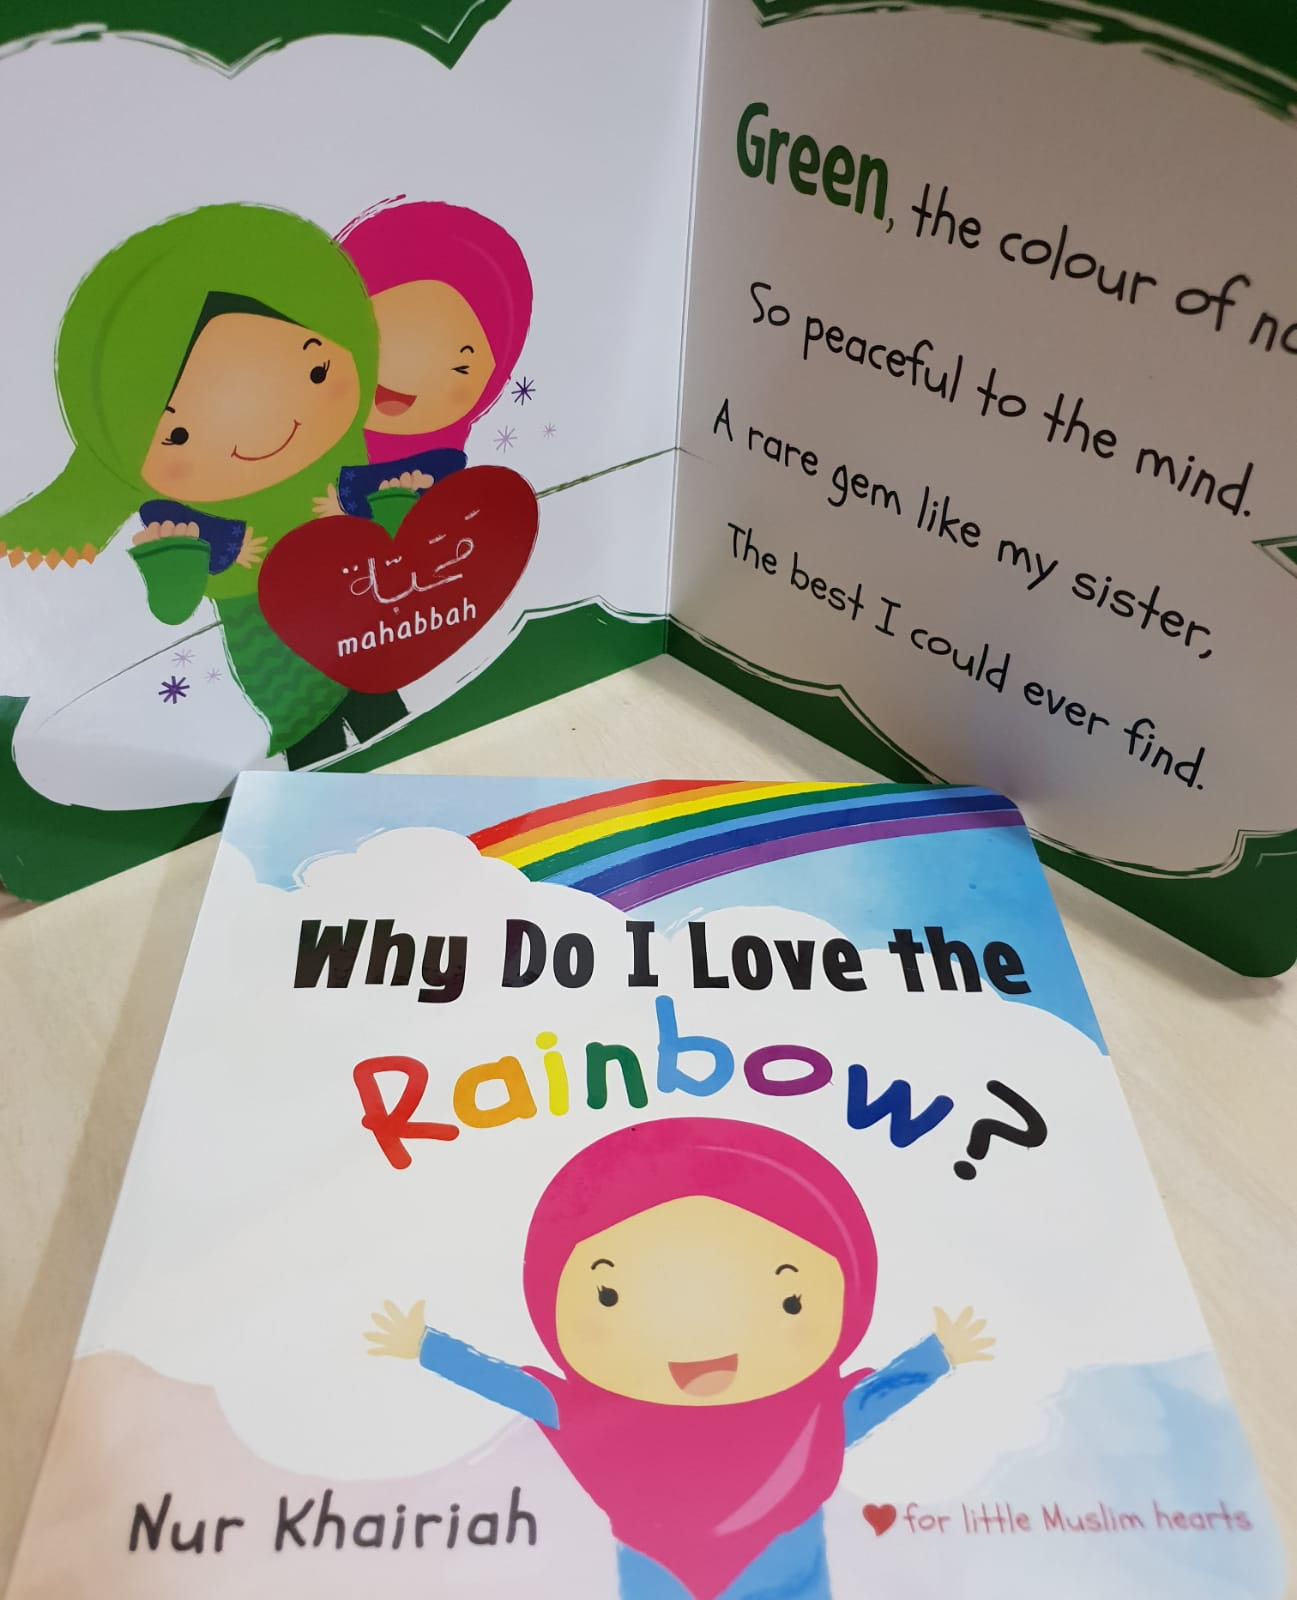 Why do I love the rainbow?